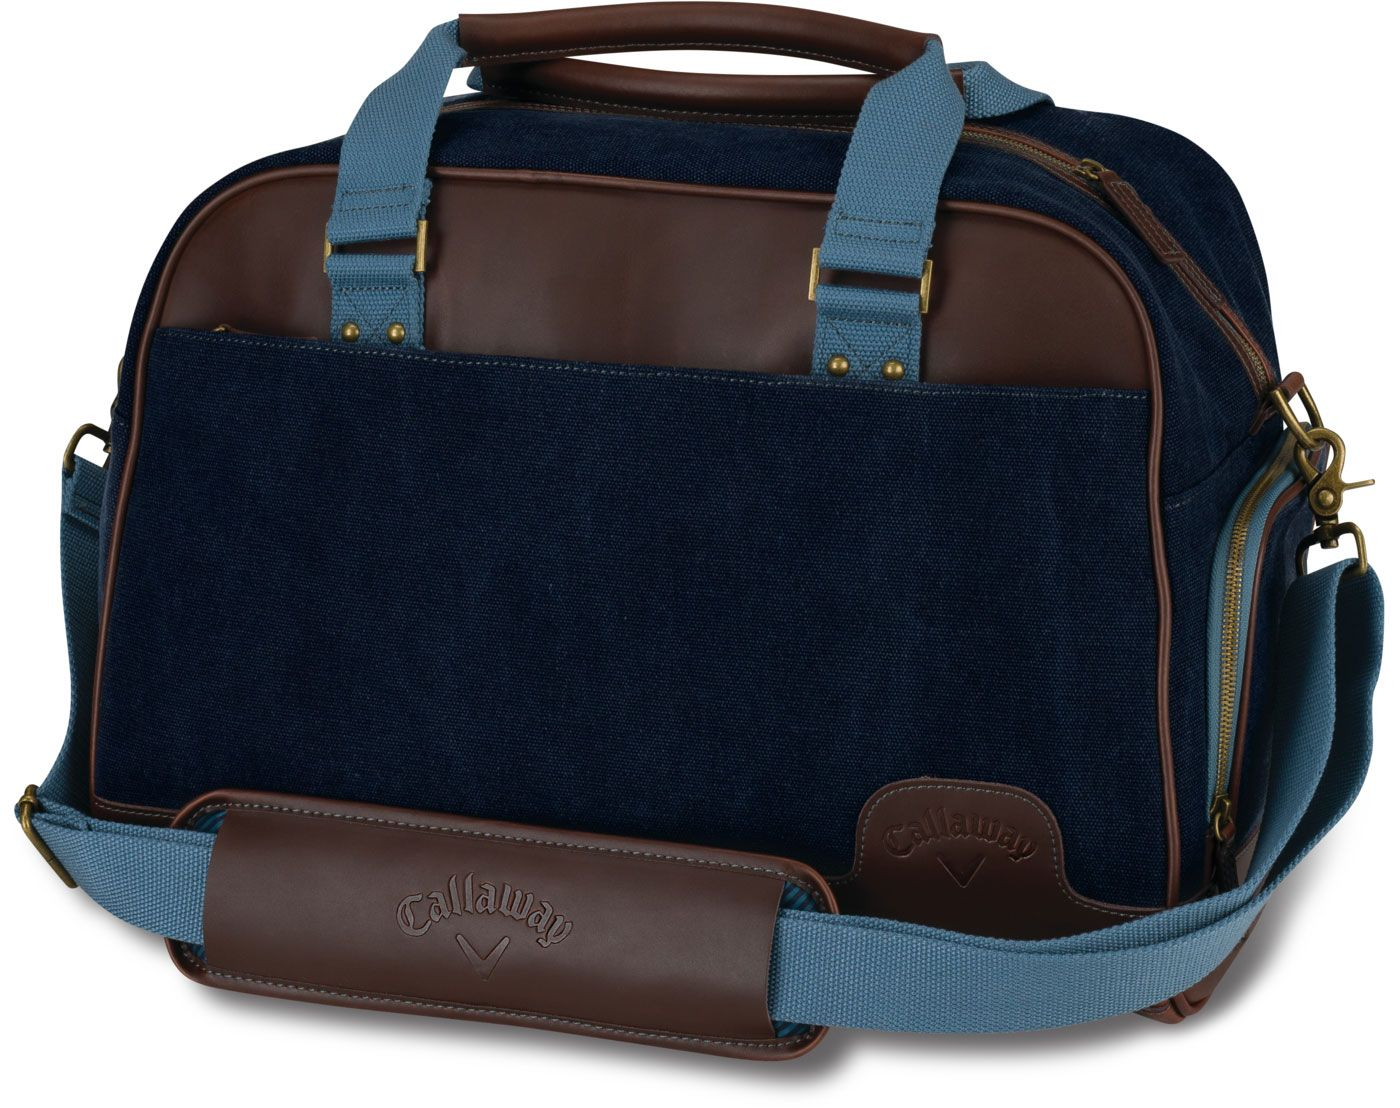 Callaway Tour Authentic Small Duffle Bag